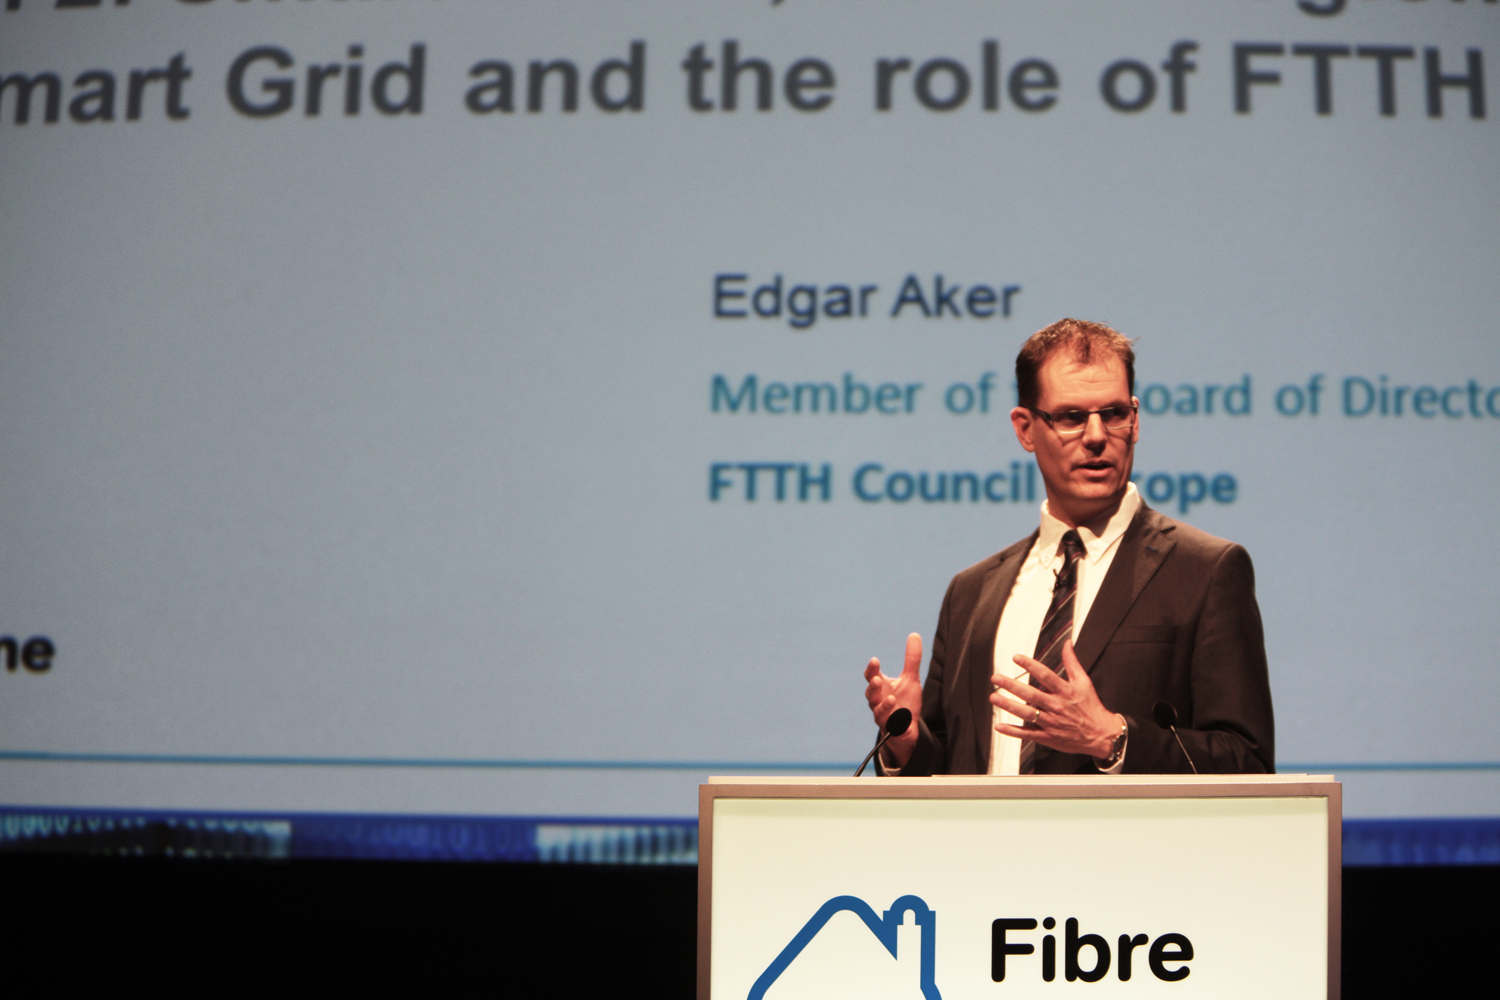 Edgar Aker di Prysmian Group nuovo Presidente di FTTH Council Europe